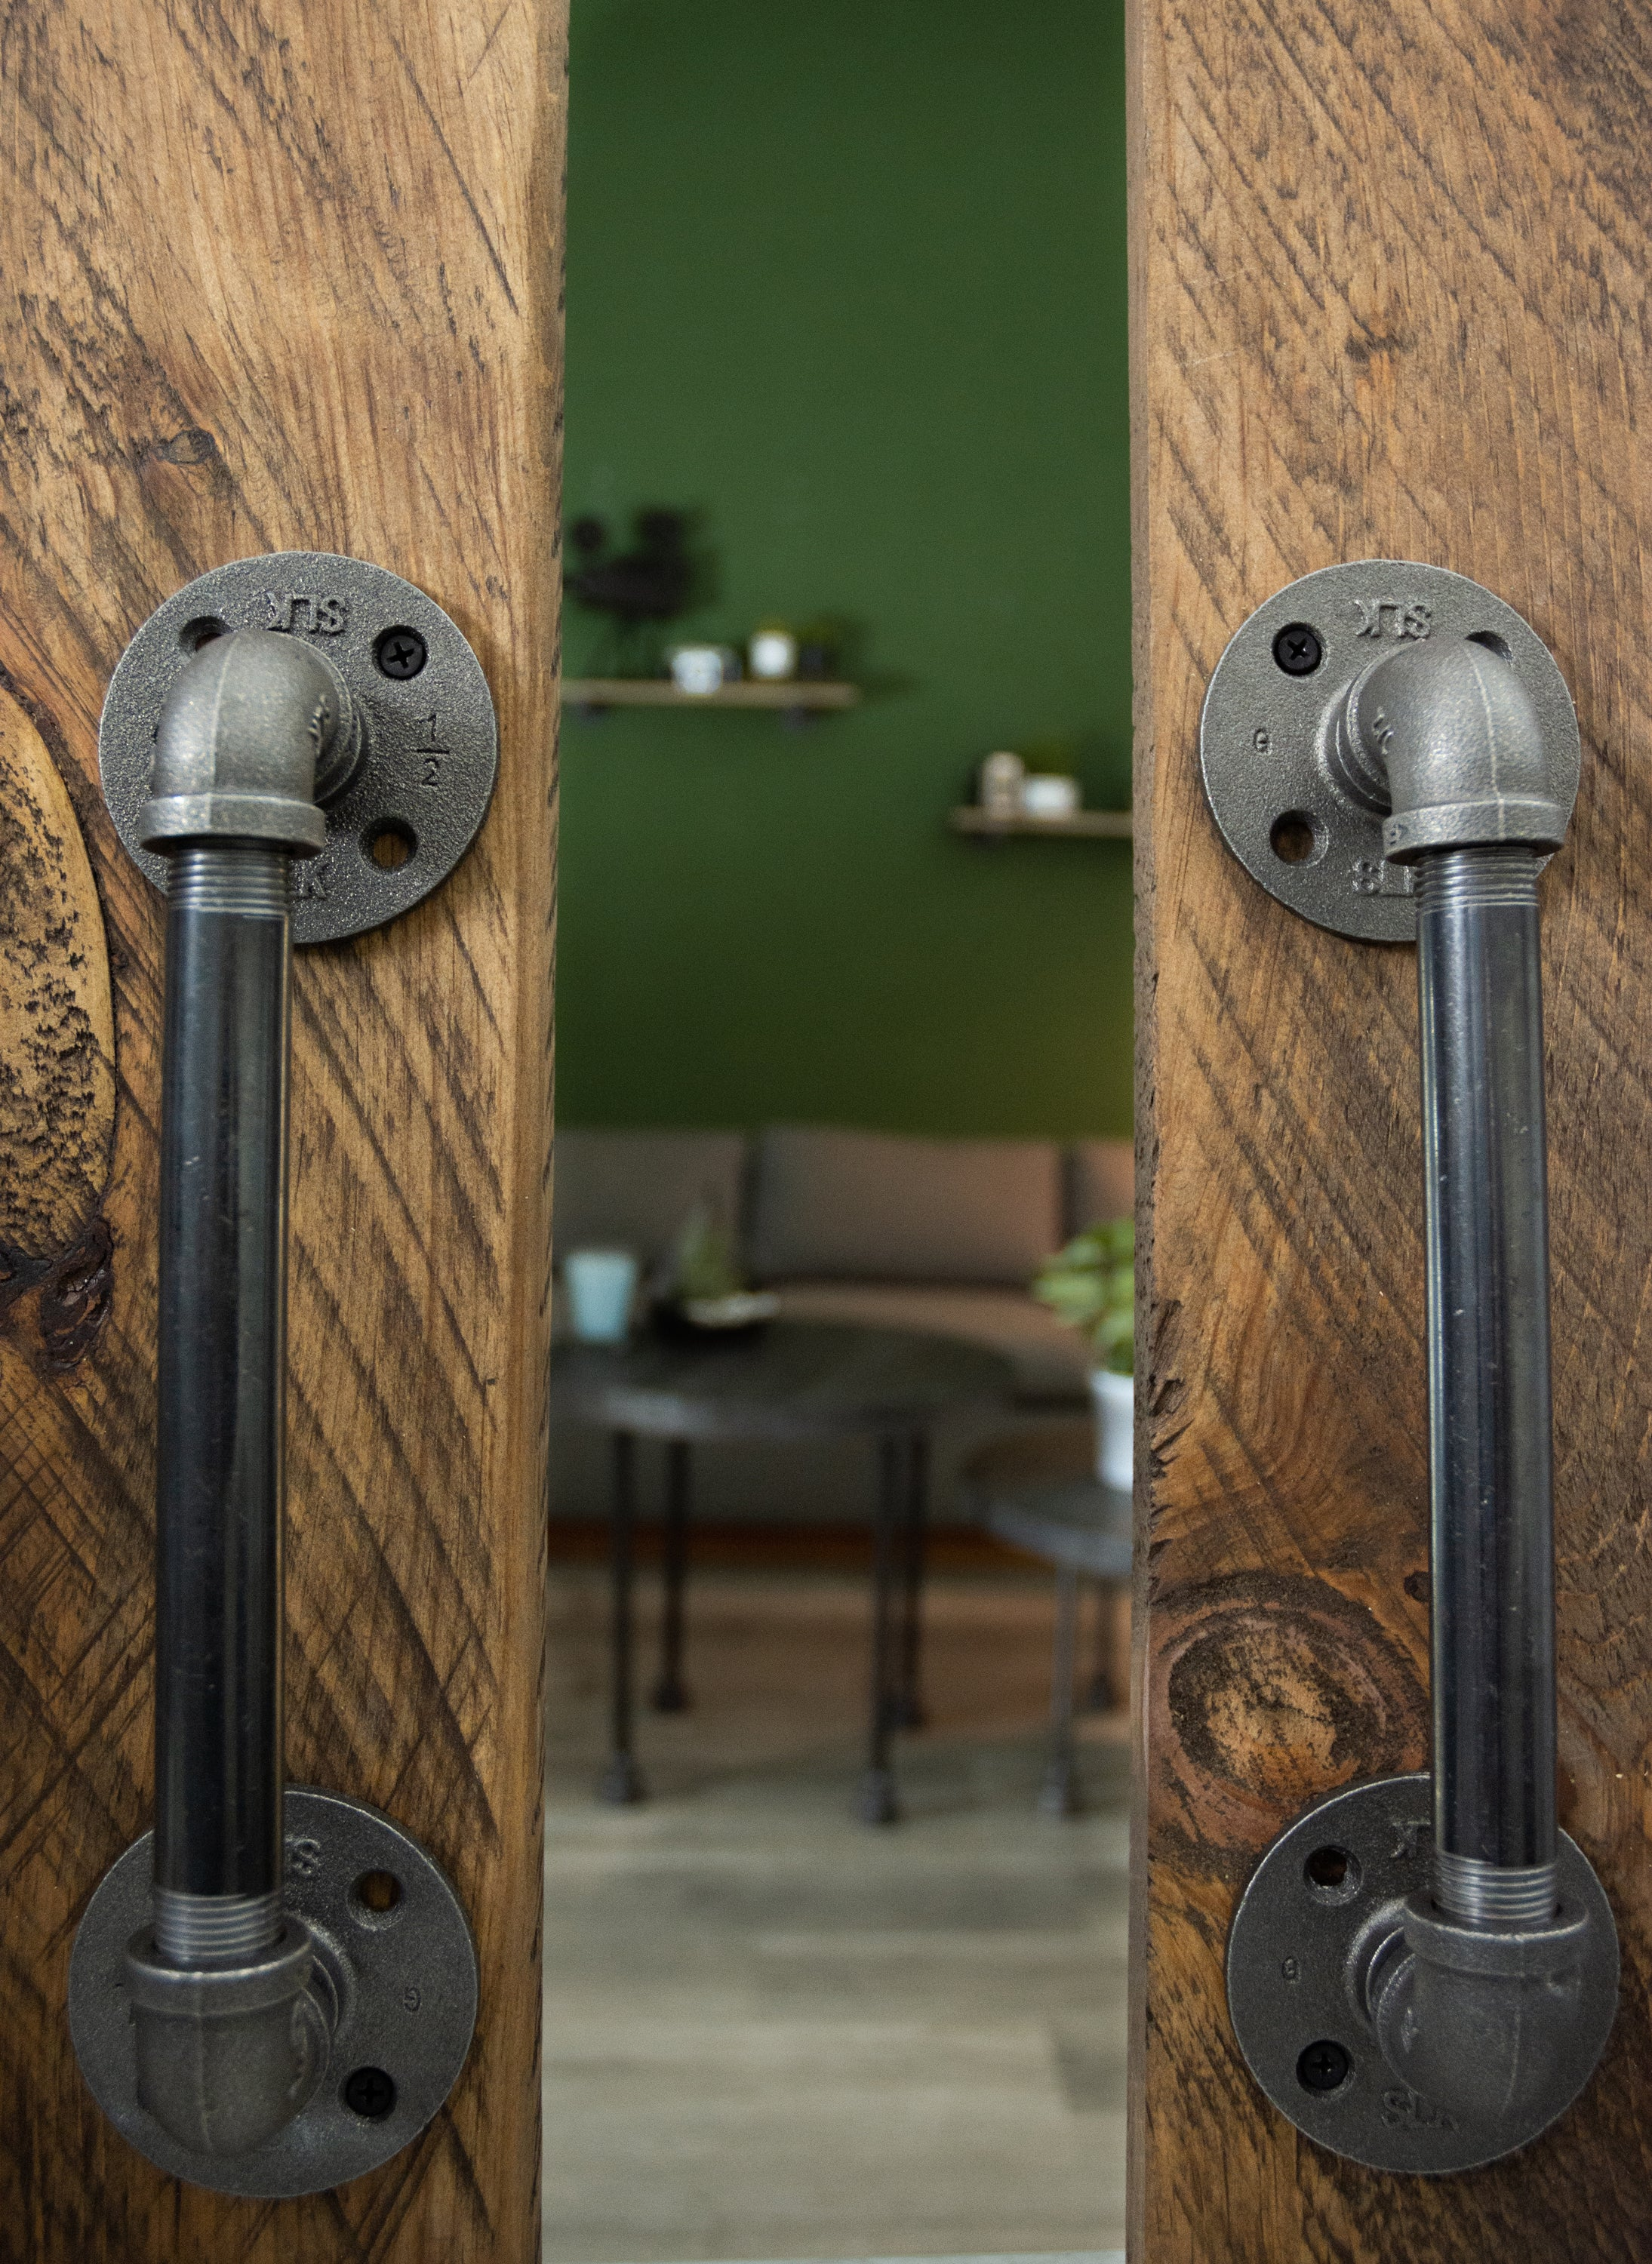 1/2 in. x 8 in. Barn Door Handle - 12.5 In L